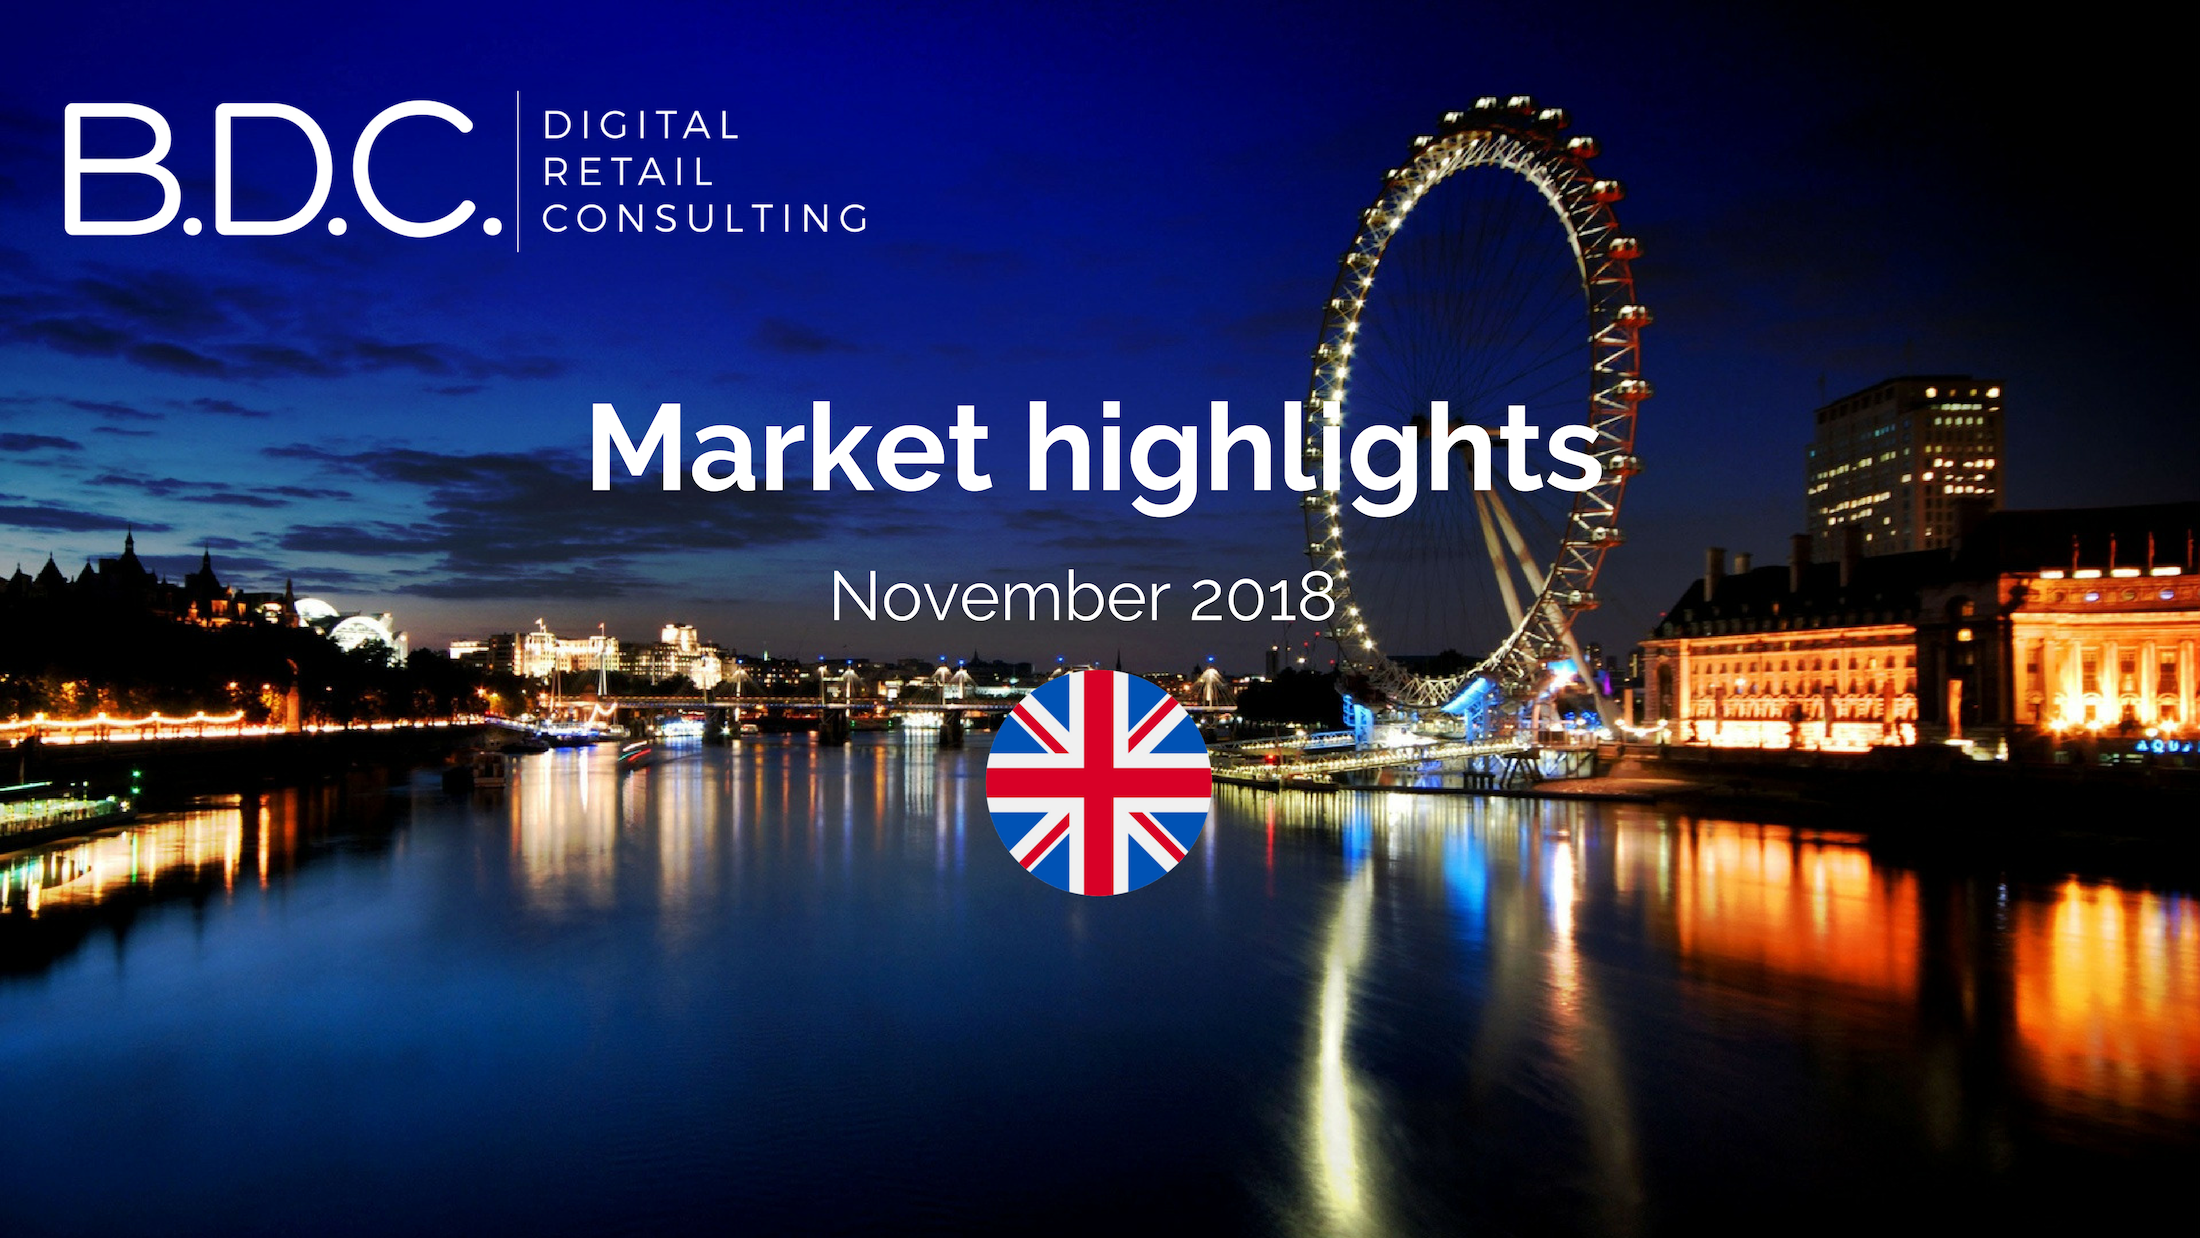 Trends News 16 - UK MARKET HIGHLIGHTS – NOVEMBER 2018